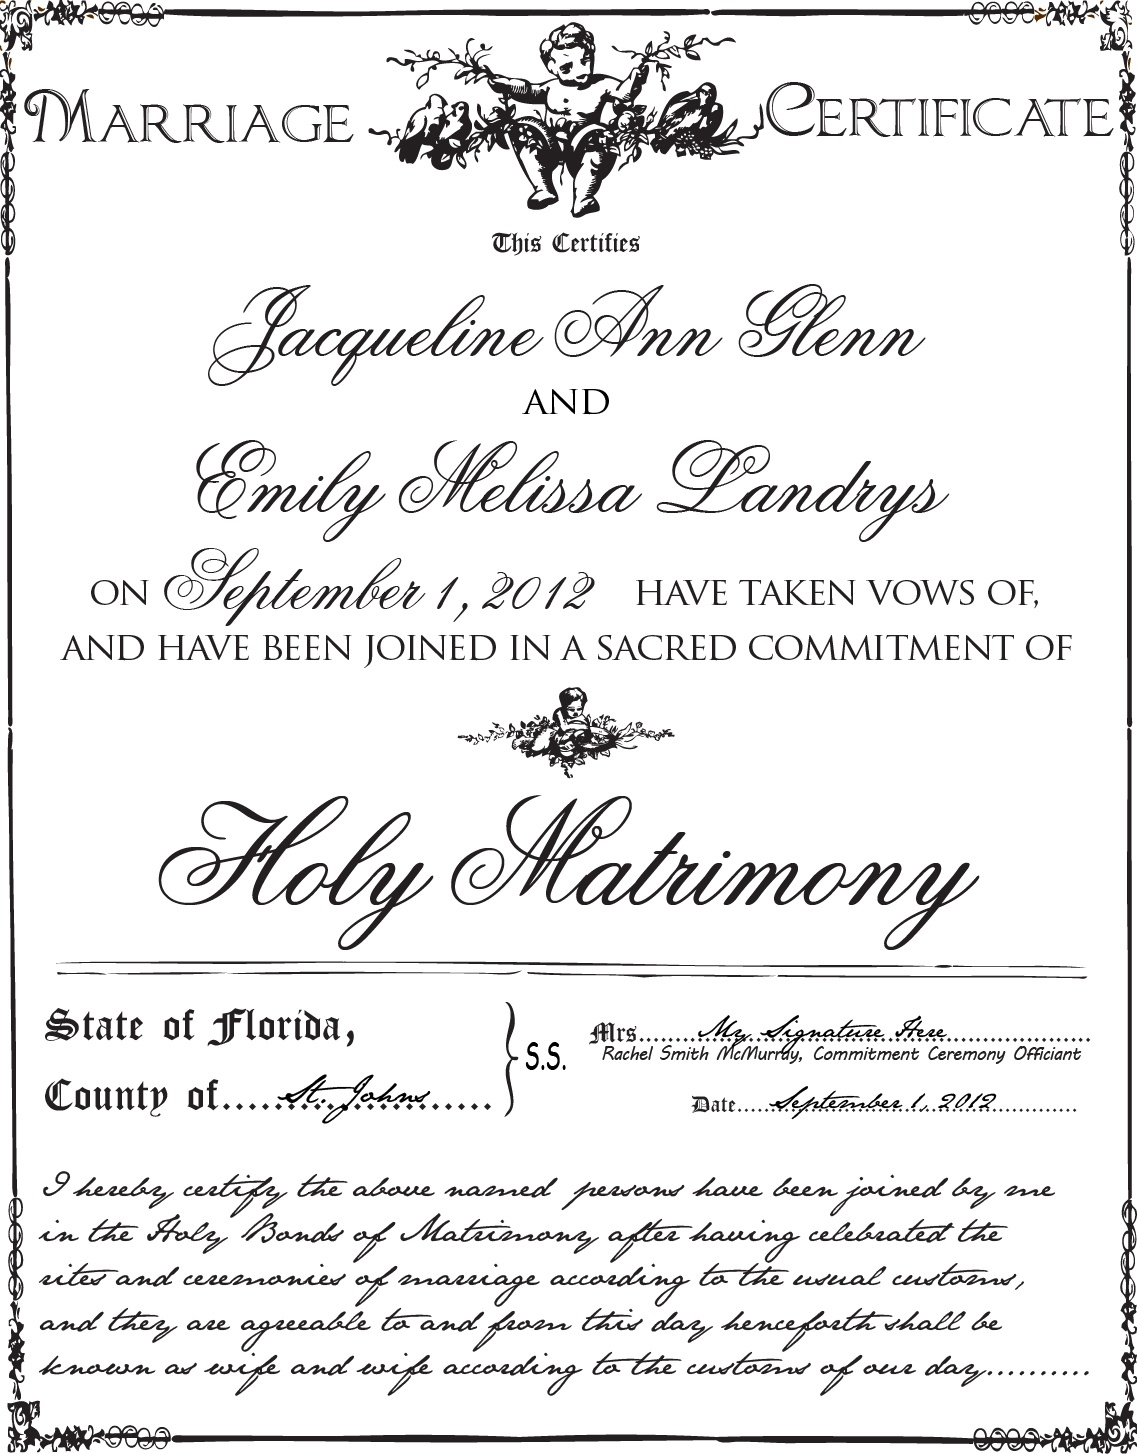 Gay Wedding - Lesbian Wedding And Commitment Ceremony Choices | Best - Commitment Certificate Free Printable